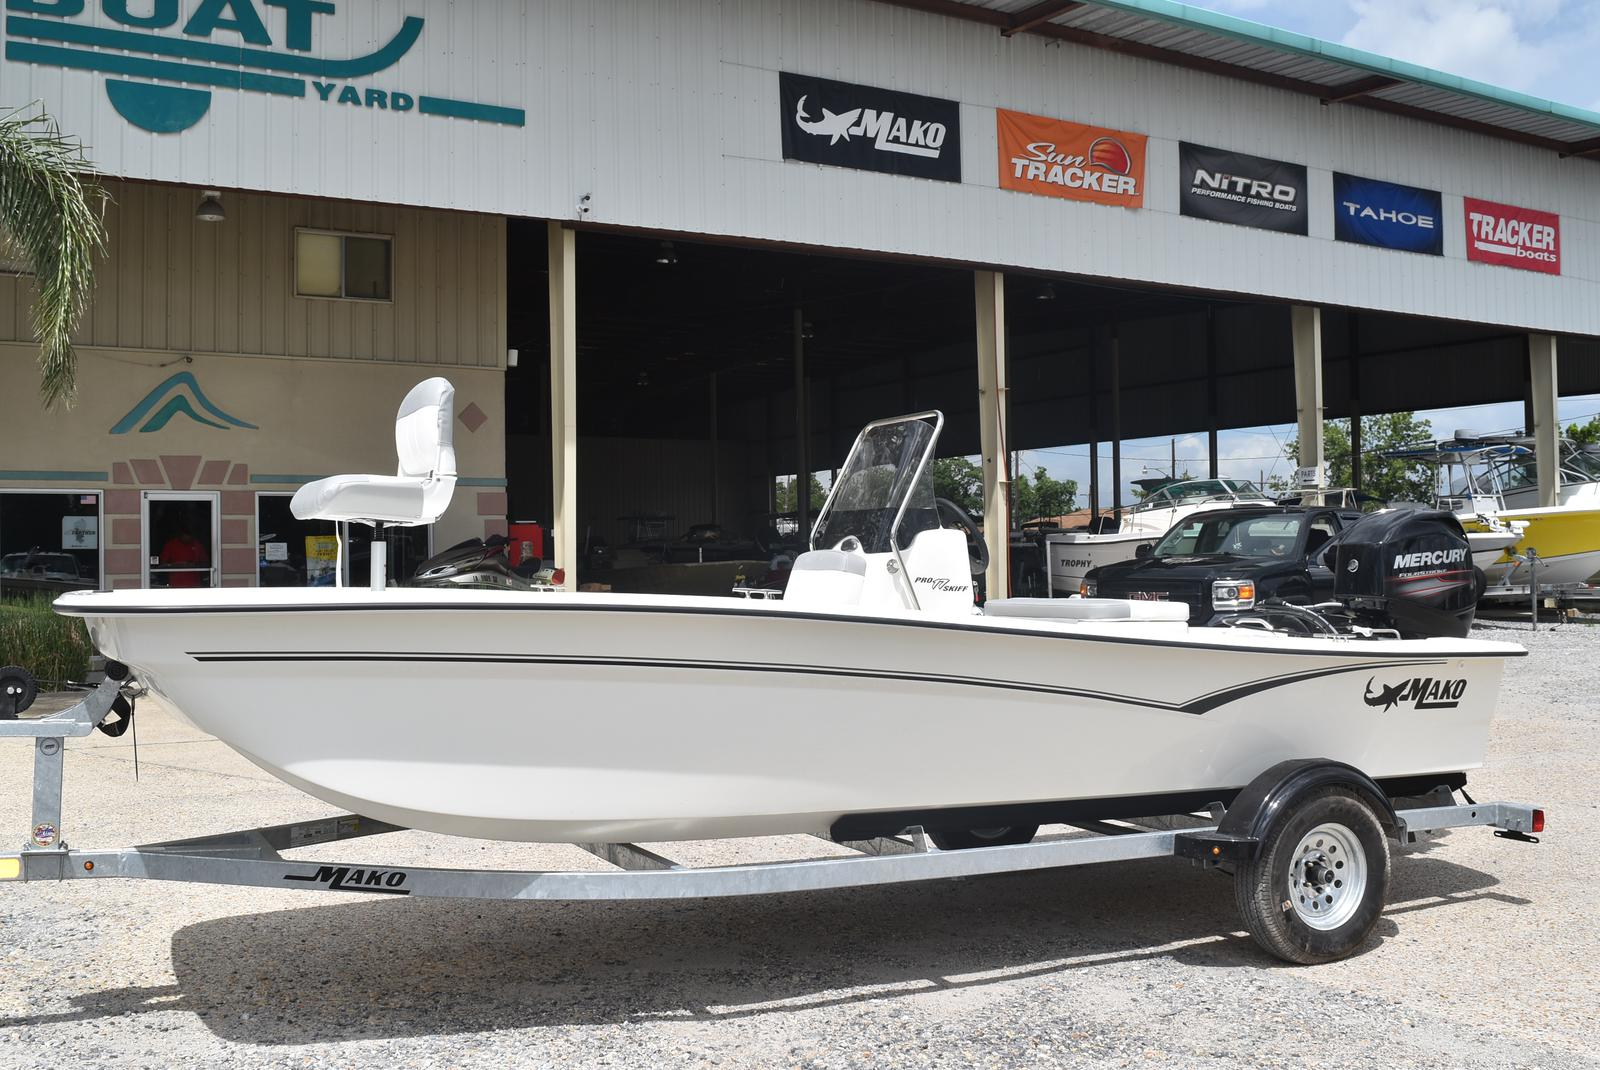 2020 Mako boat for sale, model of the boat is Pro Skiff 17, 75 ELPT & Image # 110 of 702